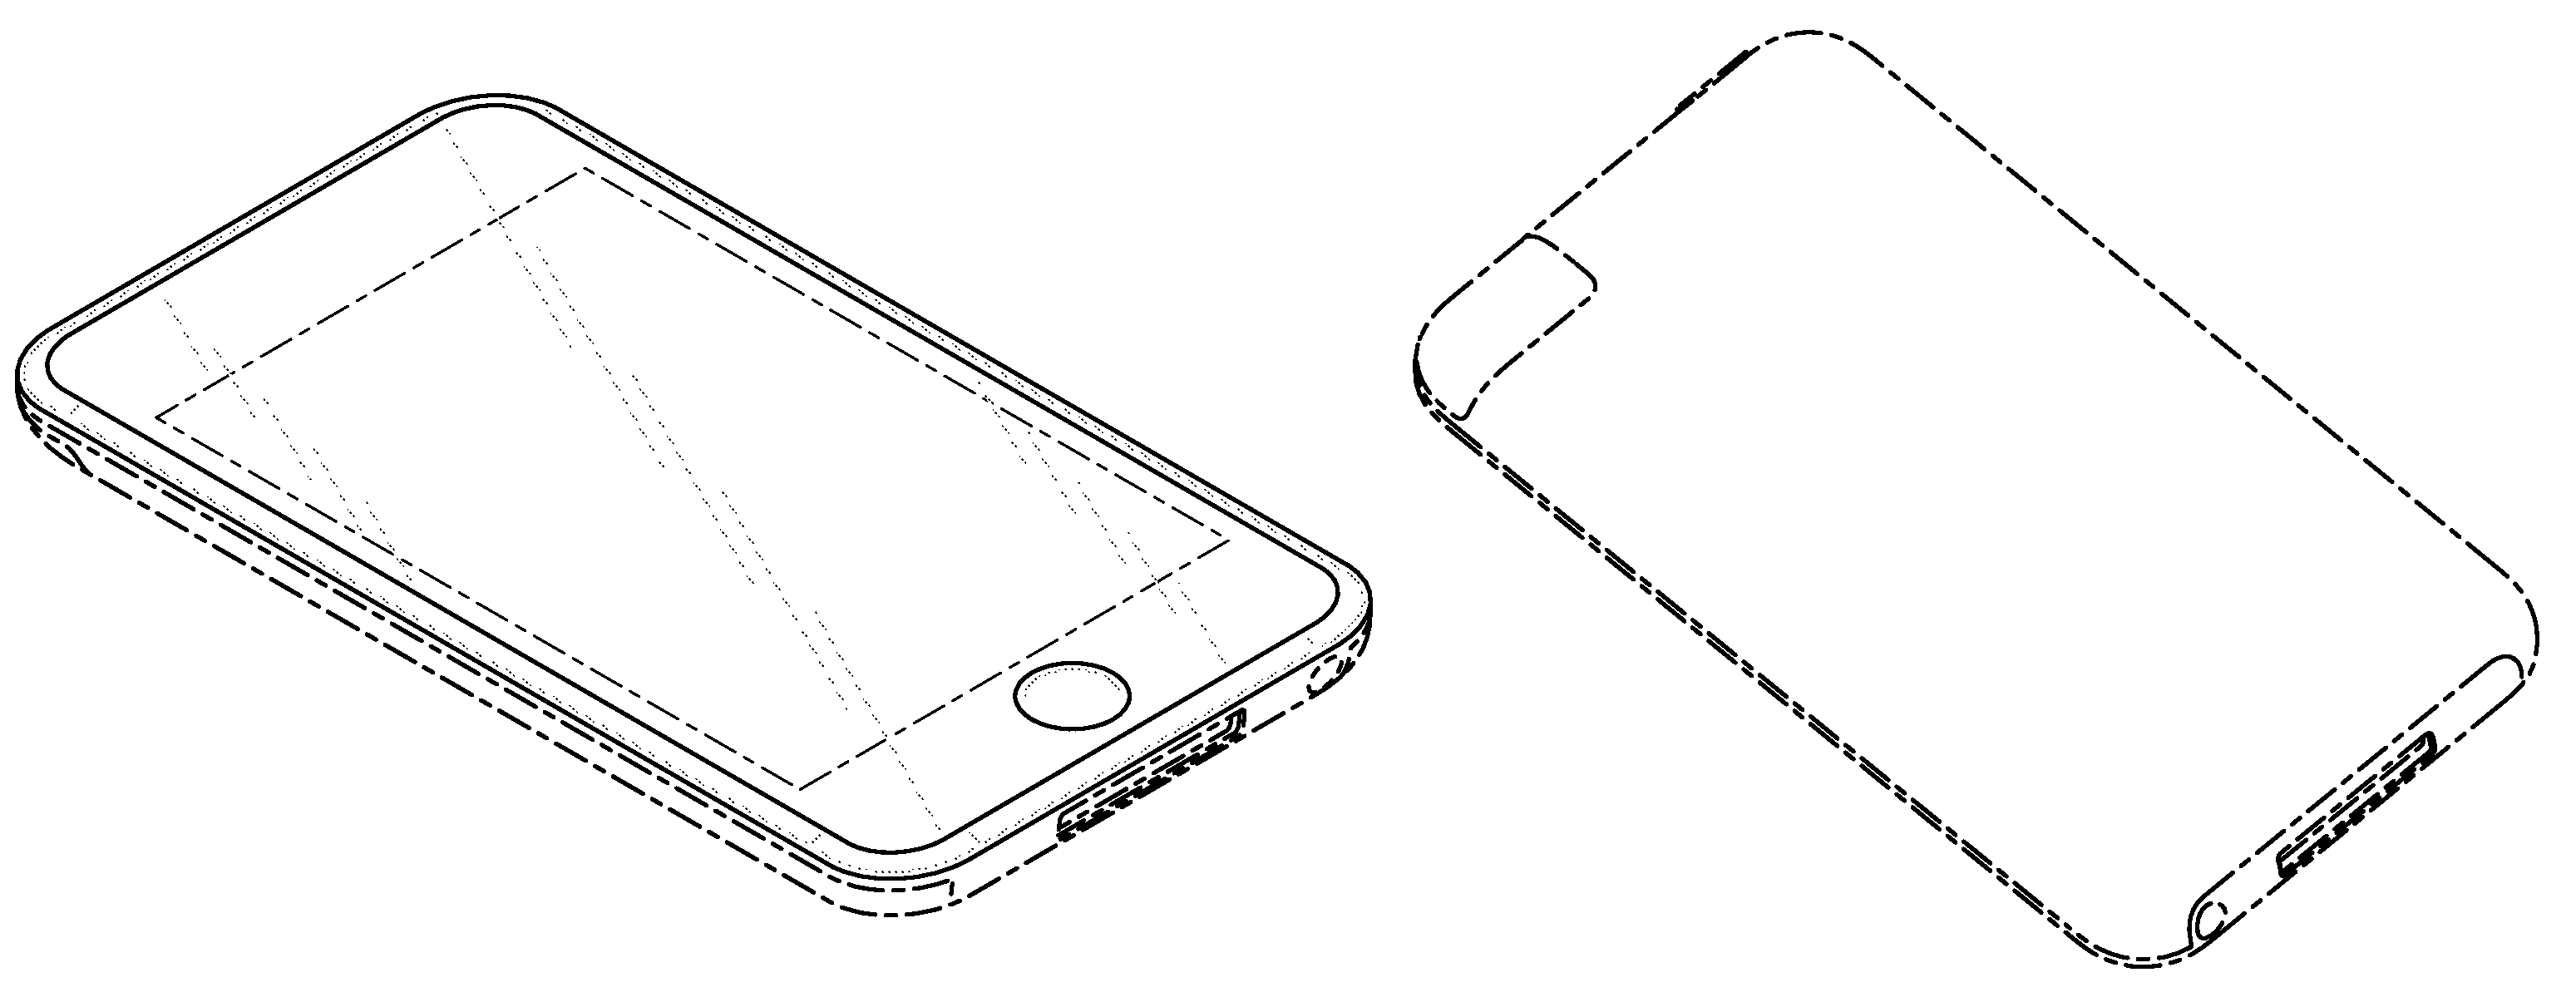 Apple  patent by Steve Jobs from 2009 for electronic device - USD604297